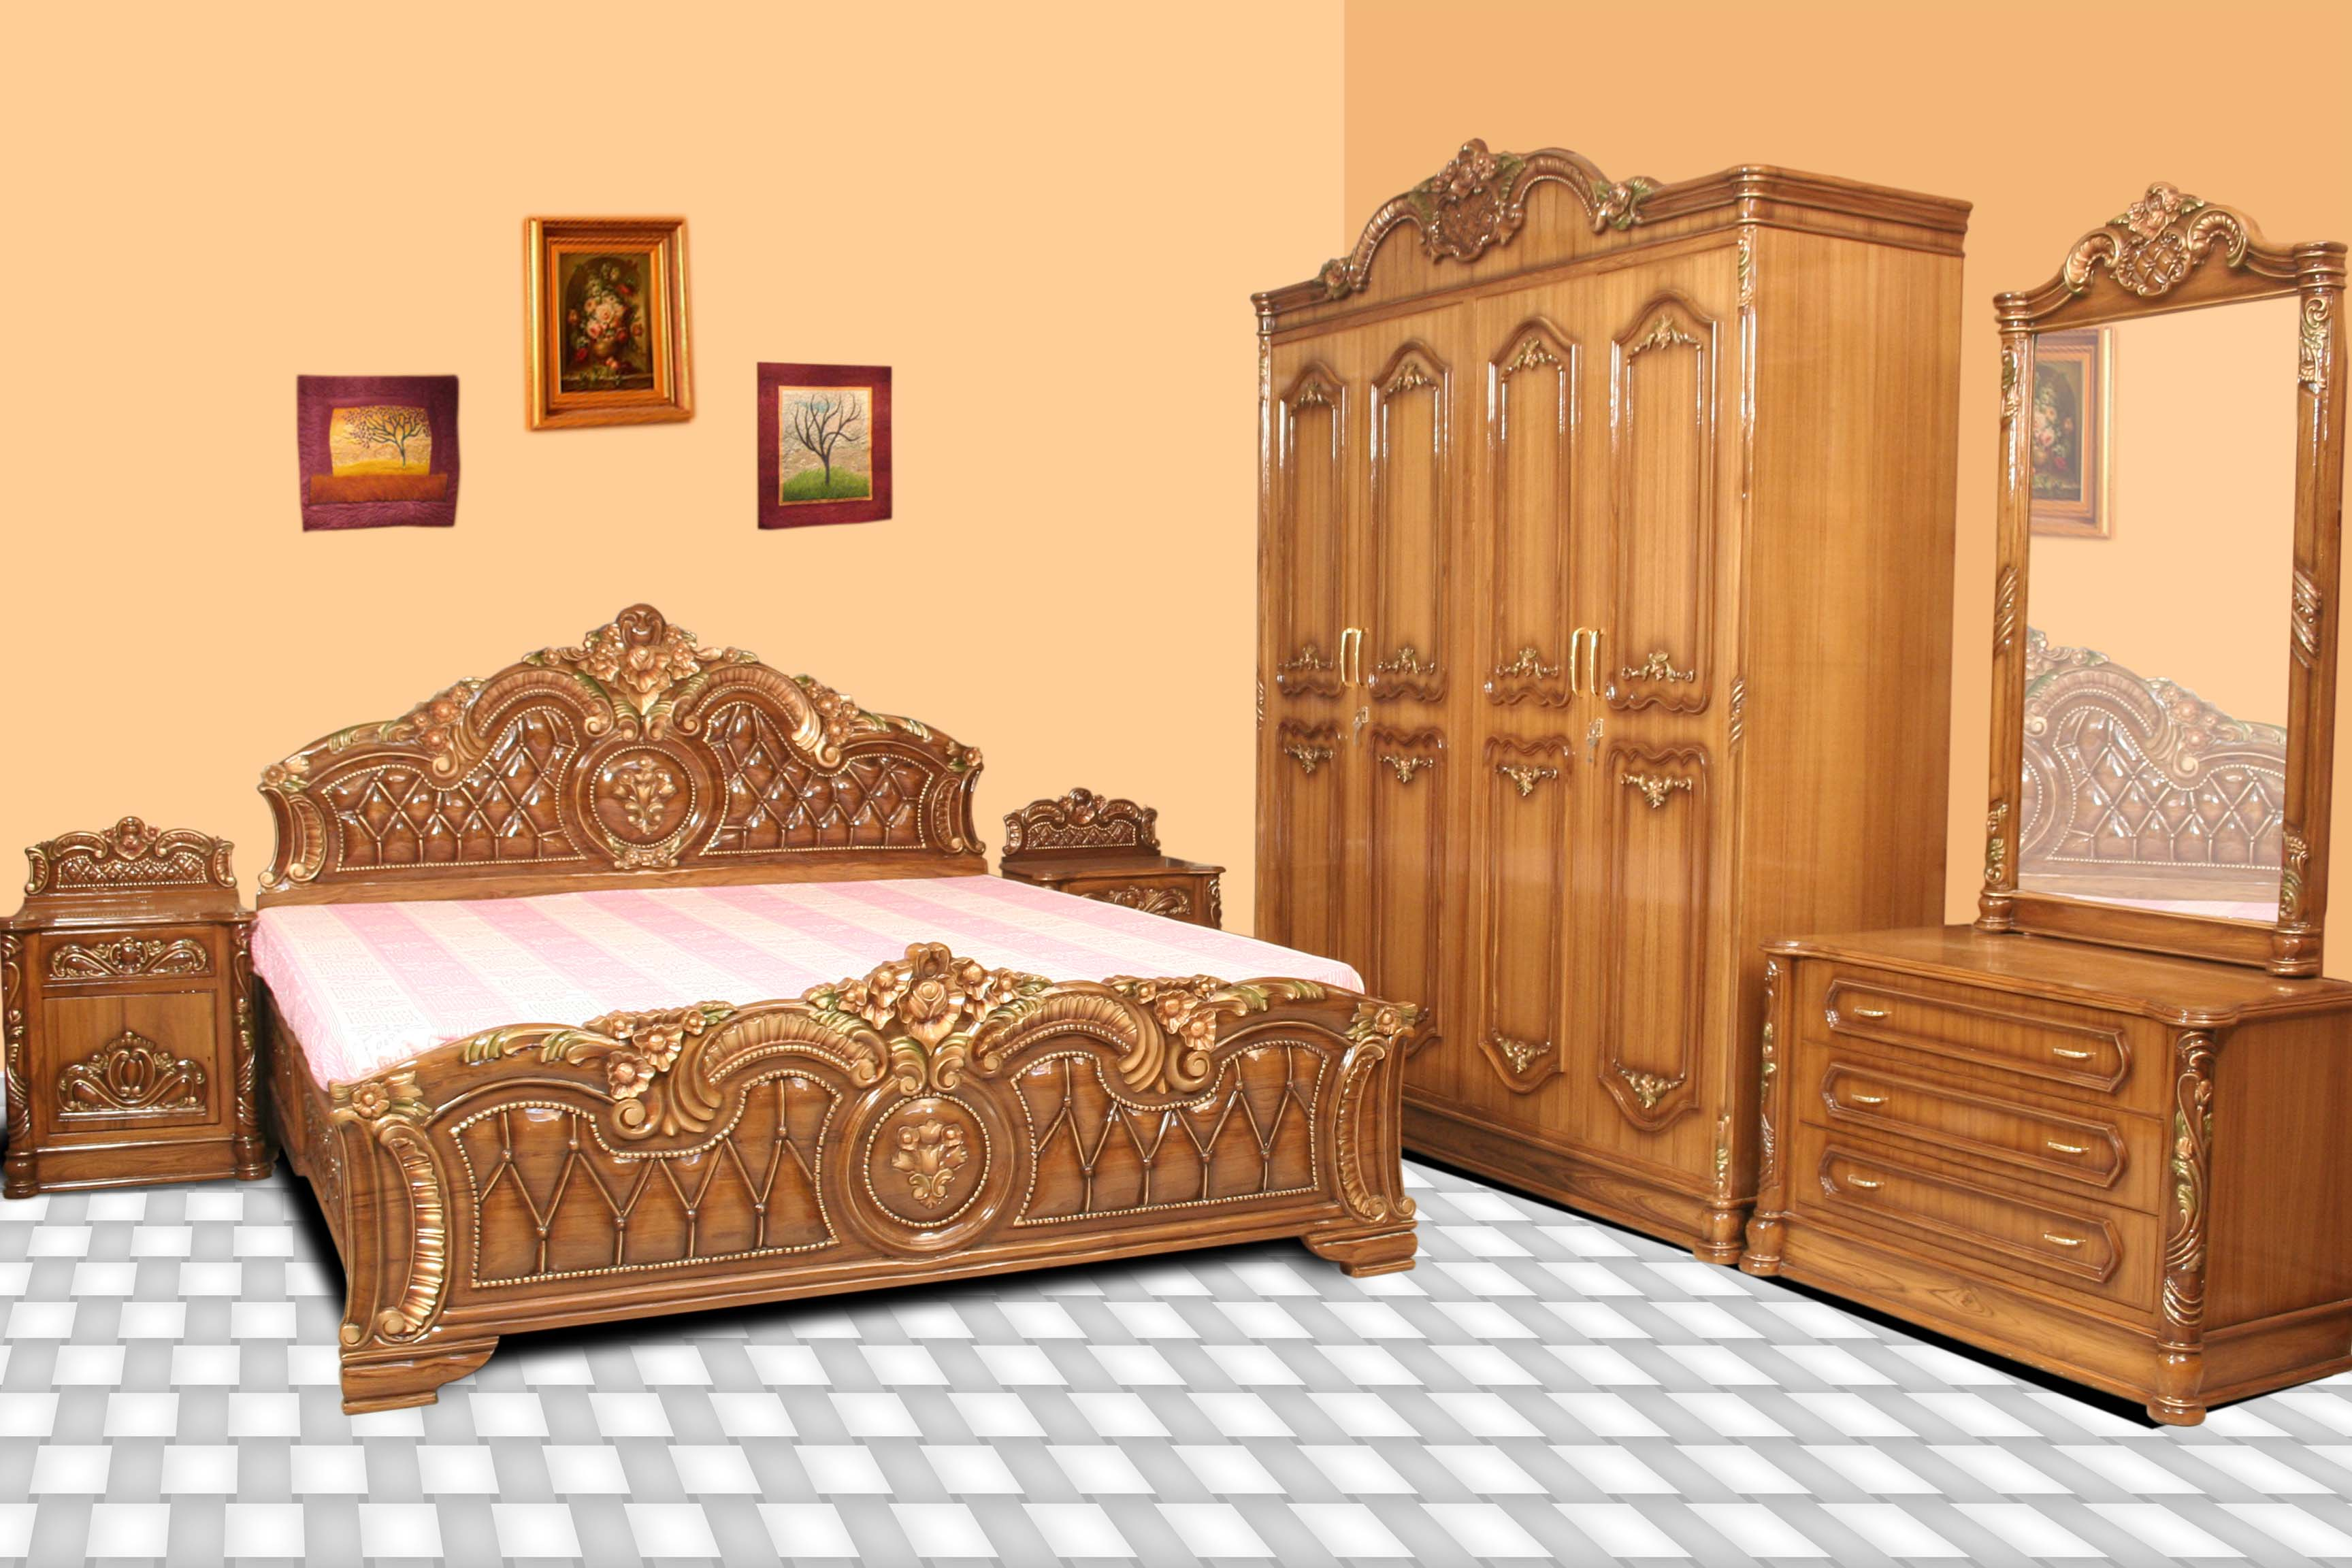 lorded ward corinth lorded ward corinth online. Black Bedroom Furniture Sets. Home Design Ideas